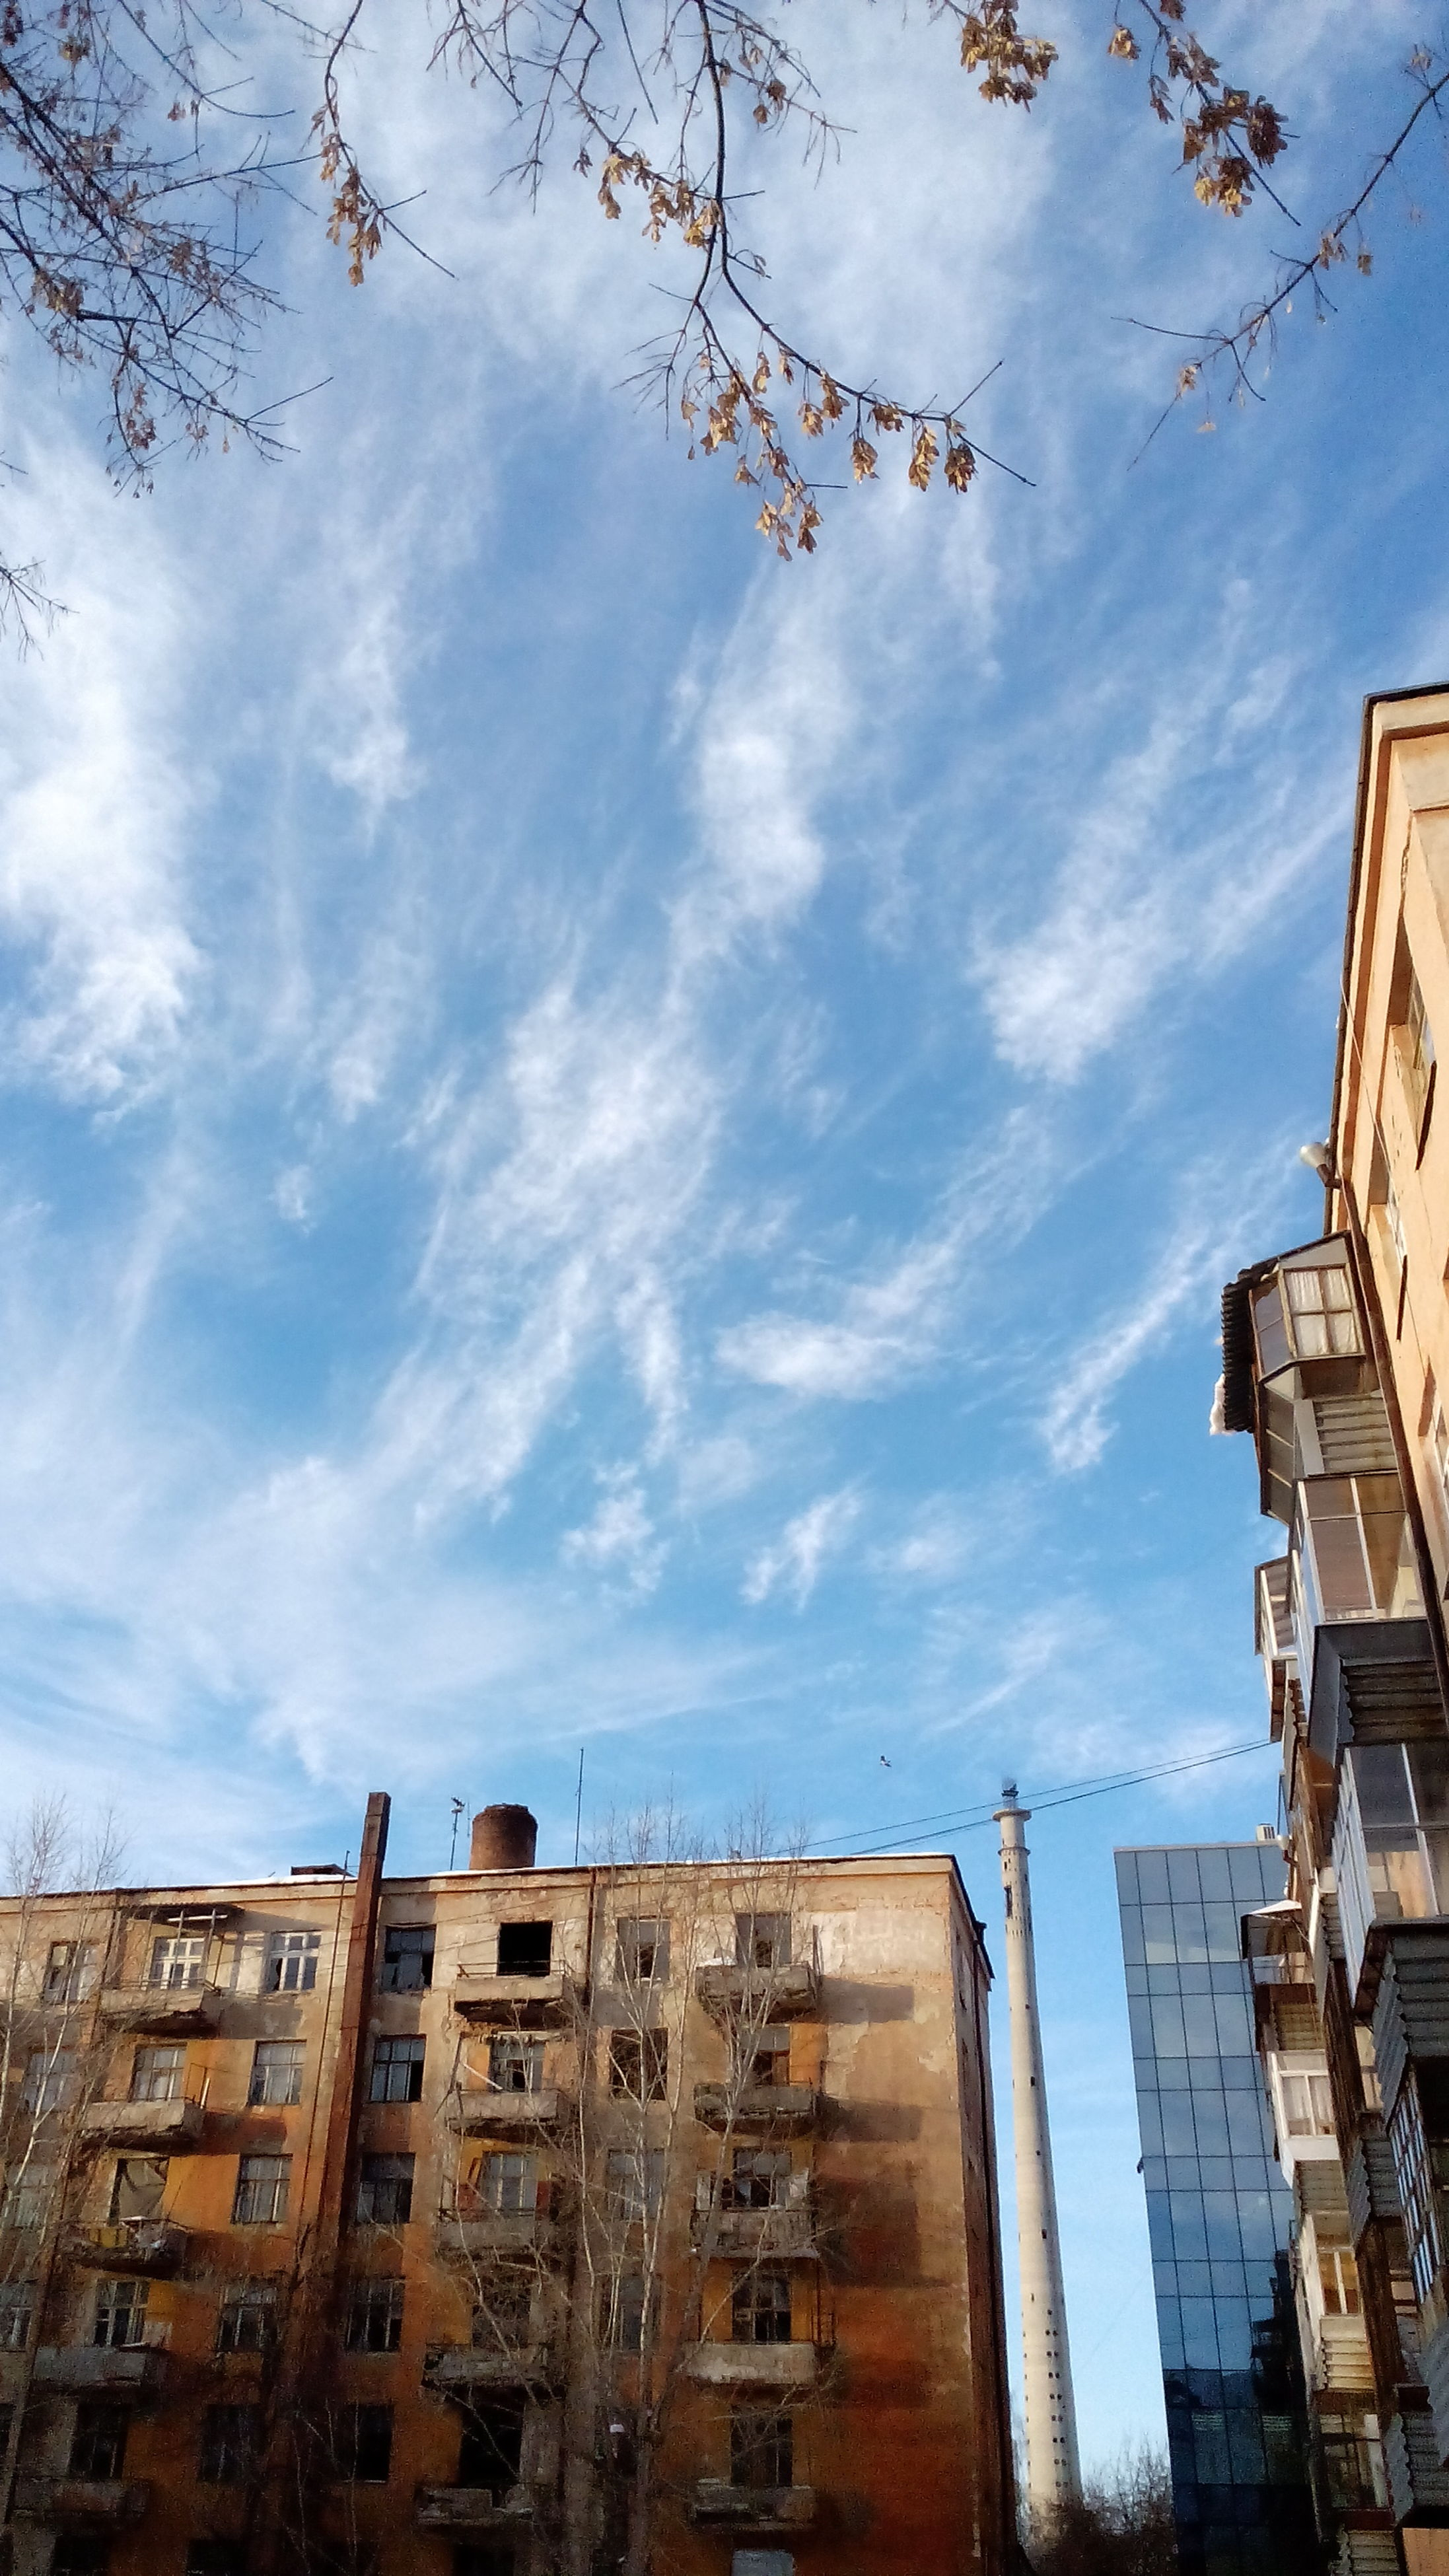 building exterior, architecture, built structure, low angle view, sky, city, building, residential building, cloud - sky, residential structure, window, cloud, day, outdoors, cloudy, no people, apartment, house, blue, residential district